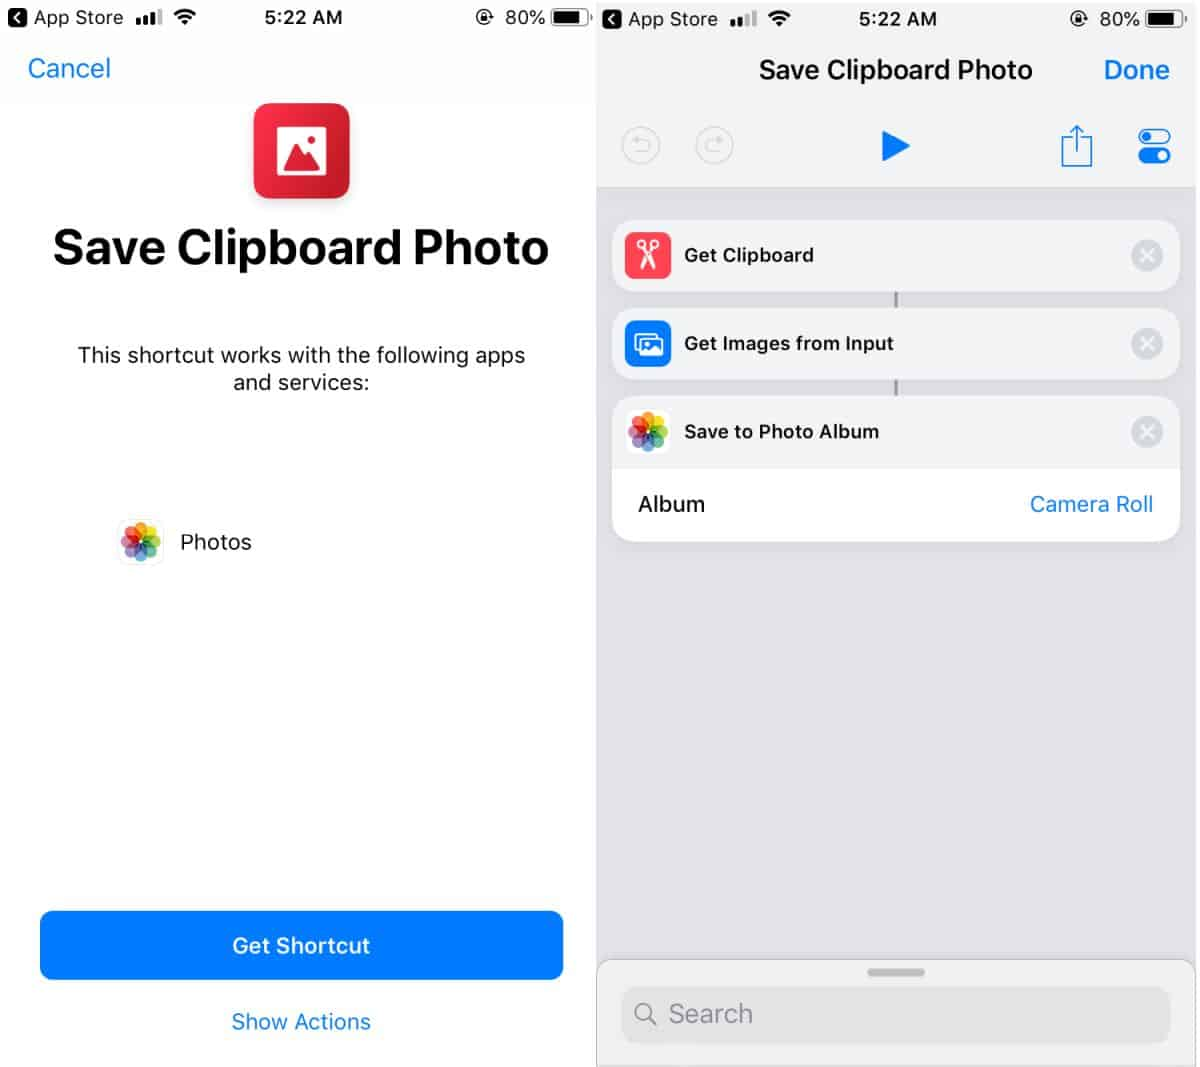 how to save a photo from the clipboard to the camera roll on ios How to save a photo from the clipboard to the camera roll on iOS